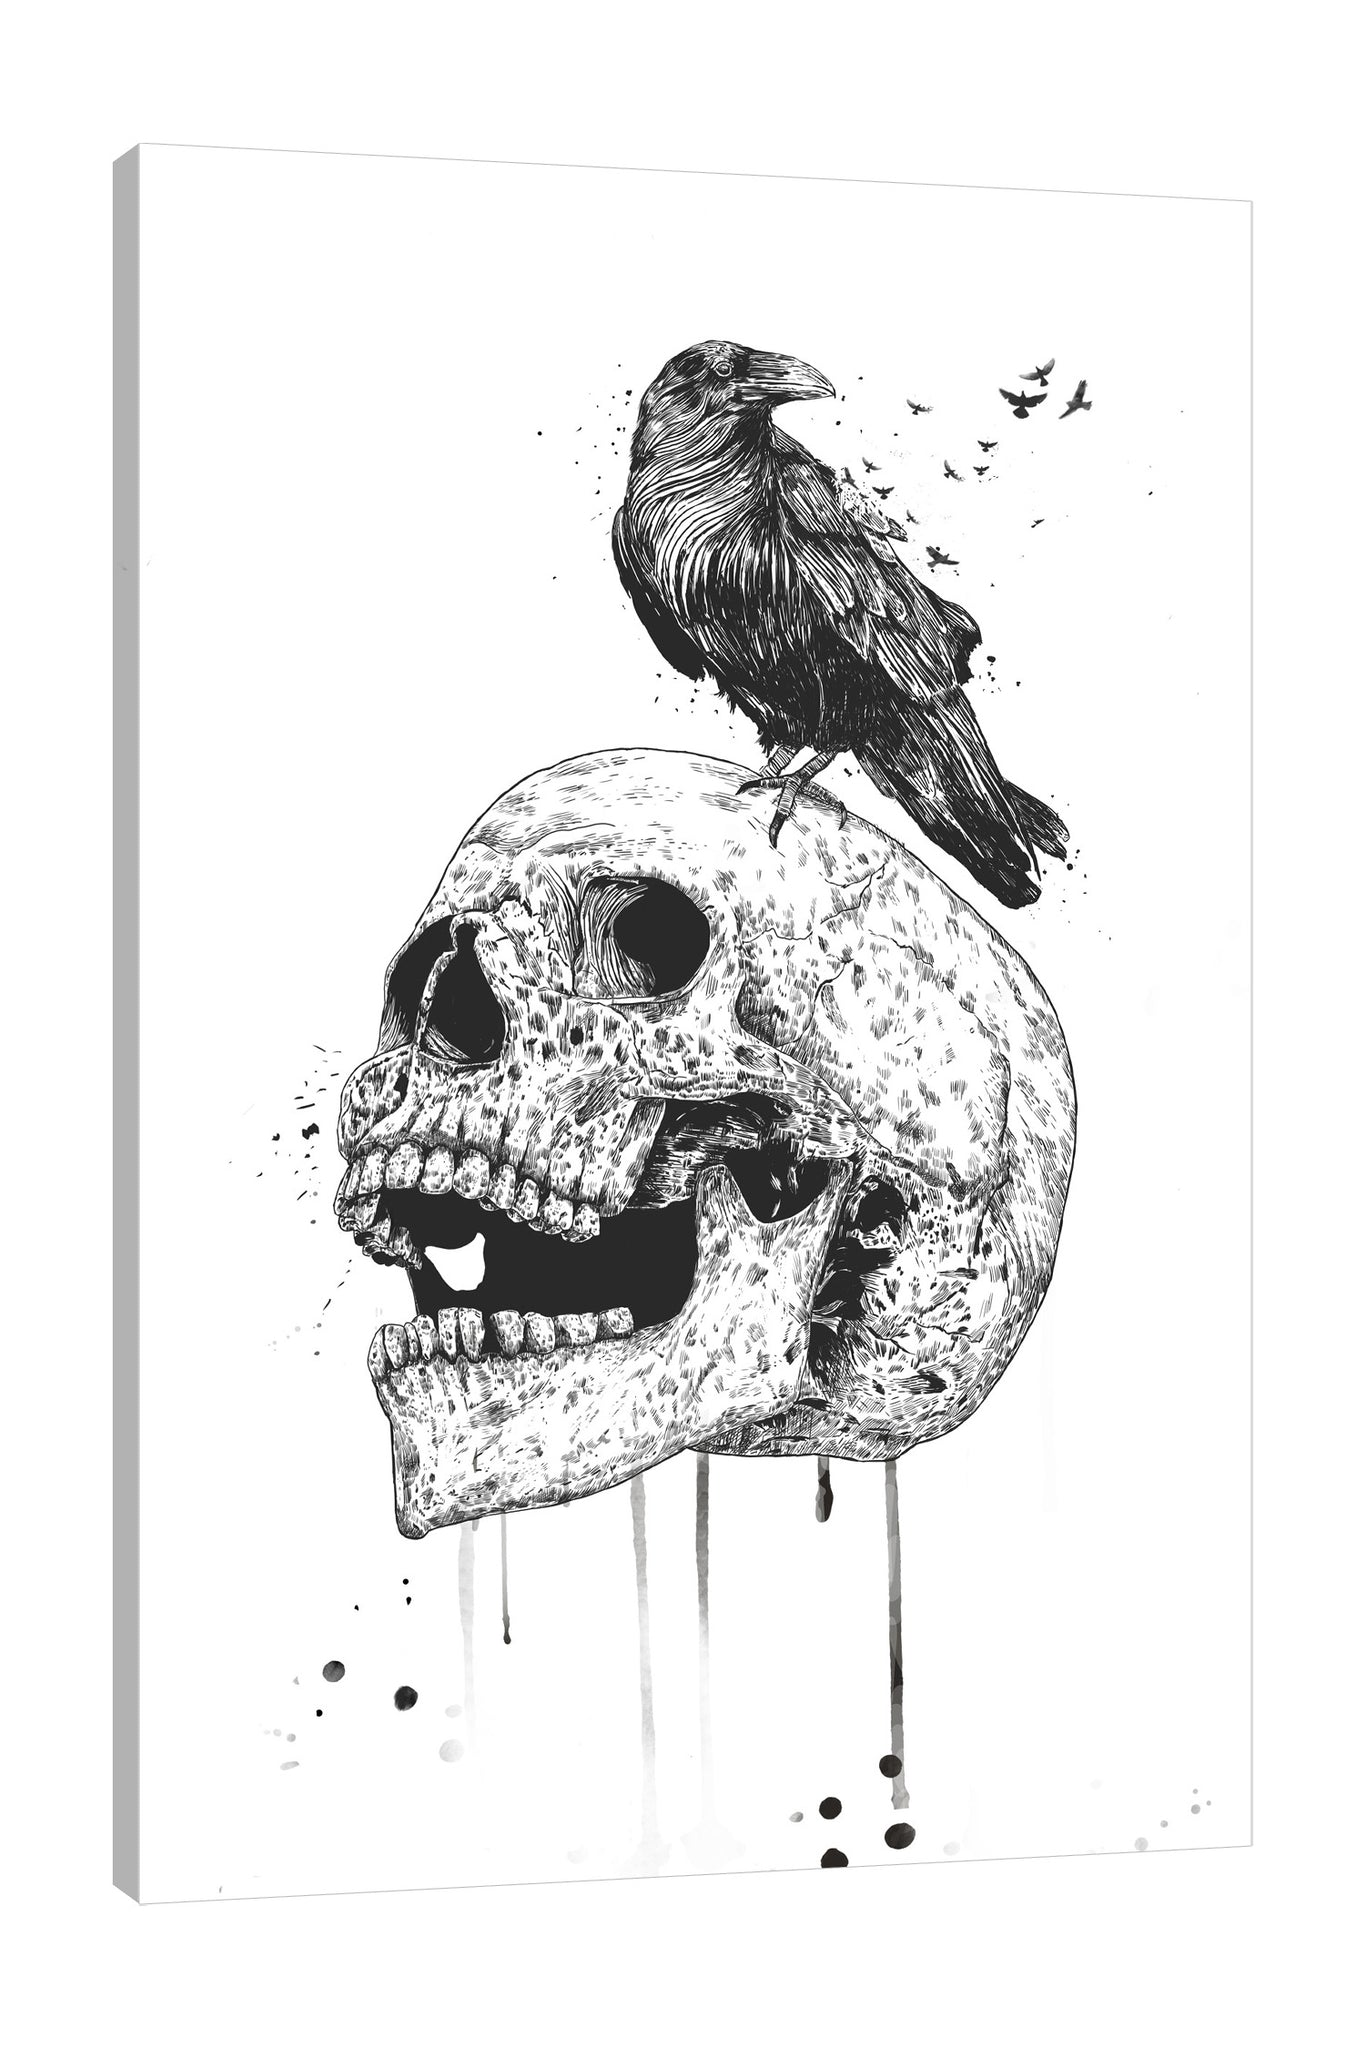 Balazs-Solti,Modern & Contemporary,Animals,People,bones,bone,skulls,skull,crow,crows,birds,bird,animals,animal,paint drips,paint drip,drips,drip,spots,spot,black and white,Charcoal Gray,Tan Orange,White,Gray